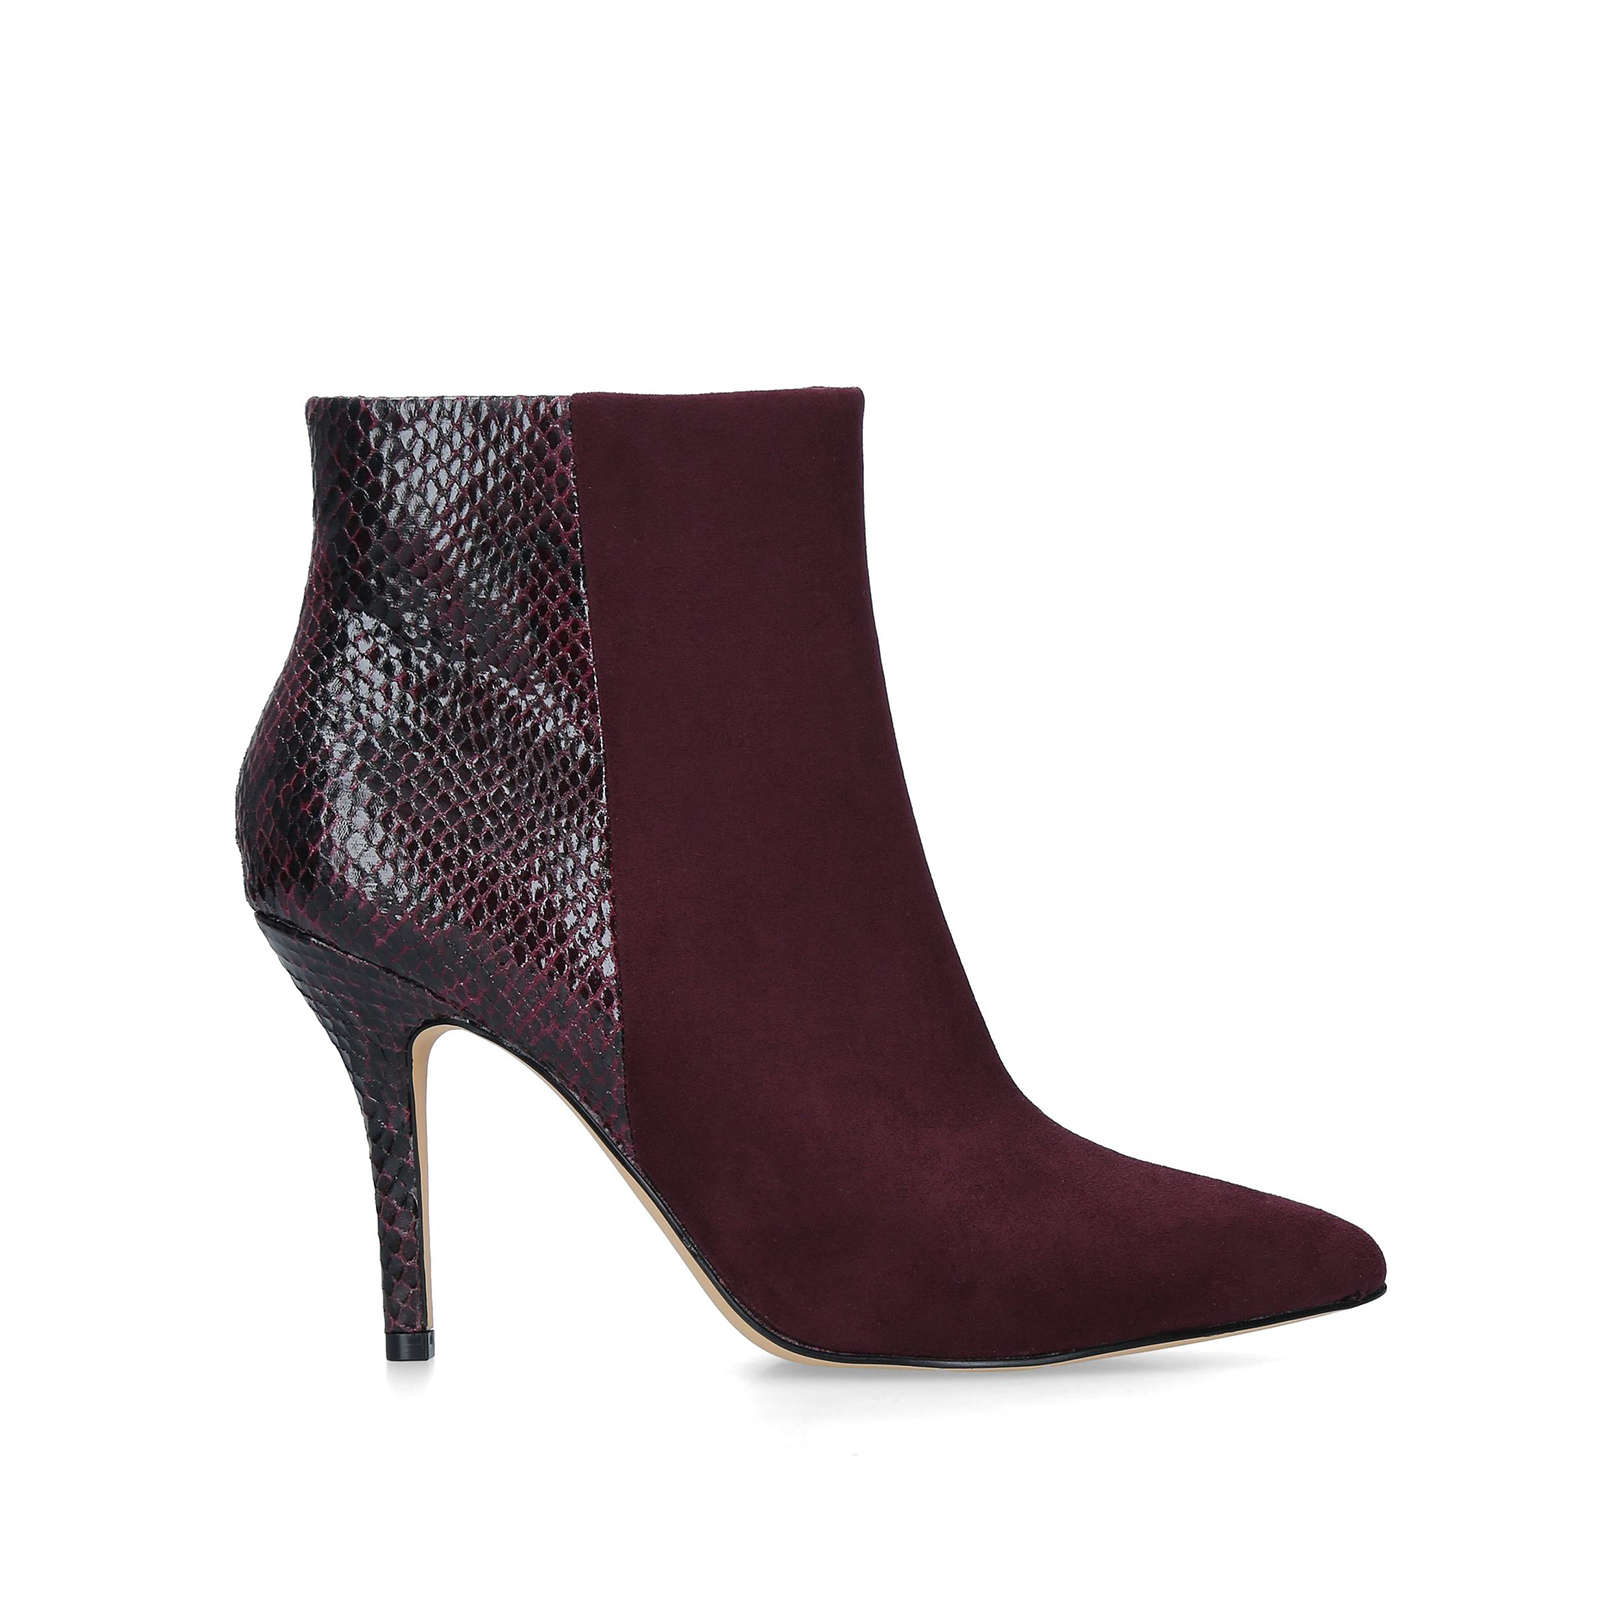 Flagship Ankle Boot by Nine West